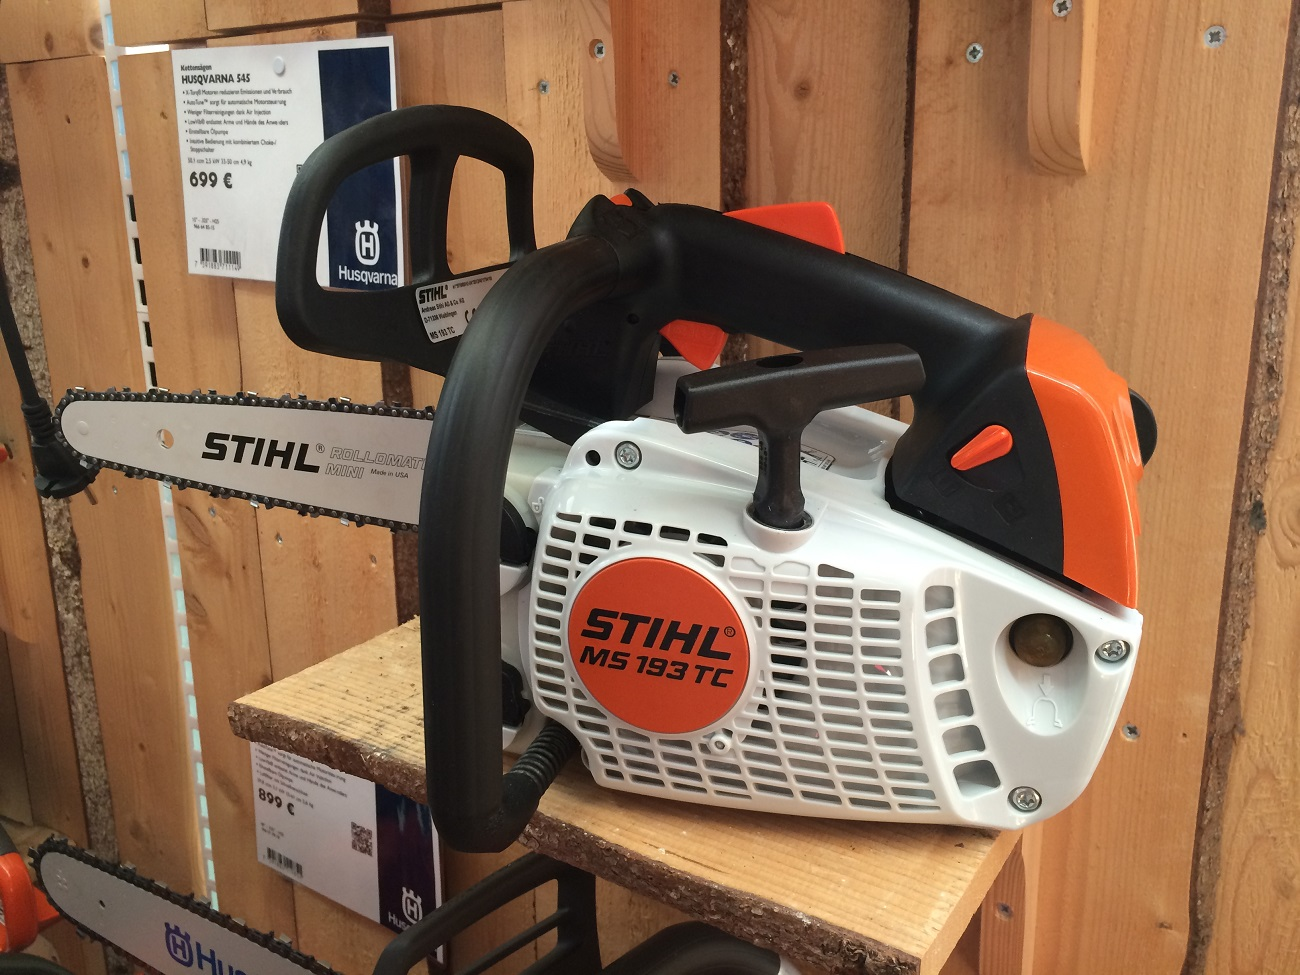 stihl motors ge ms 193 t tophandle kettens ge b rger forsttechnik shop. Black Bedroom Furniture Sets. Home Design Ideas